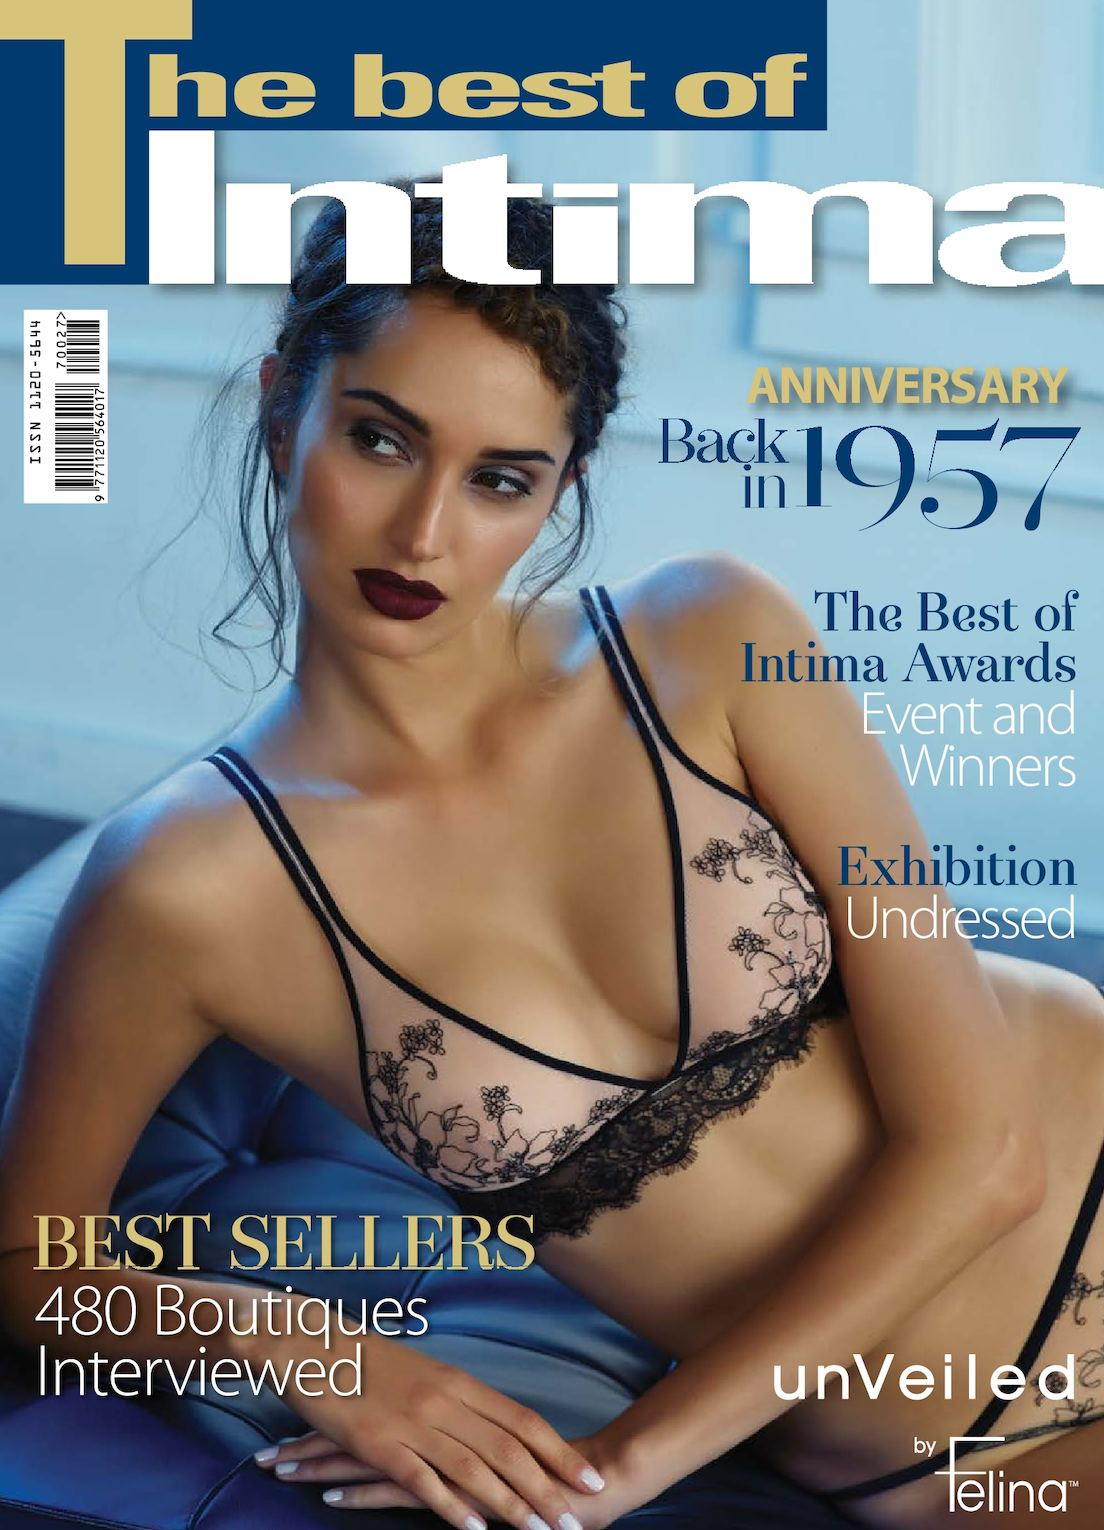 aa1d7f3c4dba7 Calaméo - THE BEST OF INTIMA FEBRUARY 2017